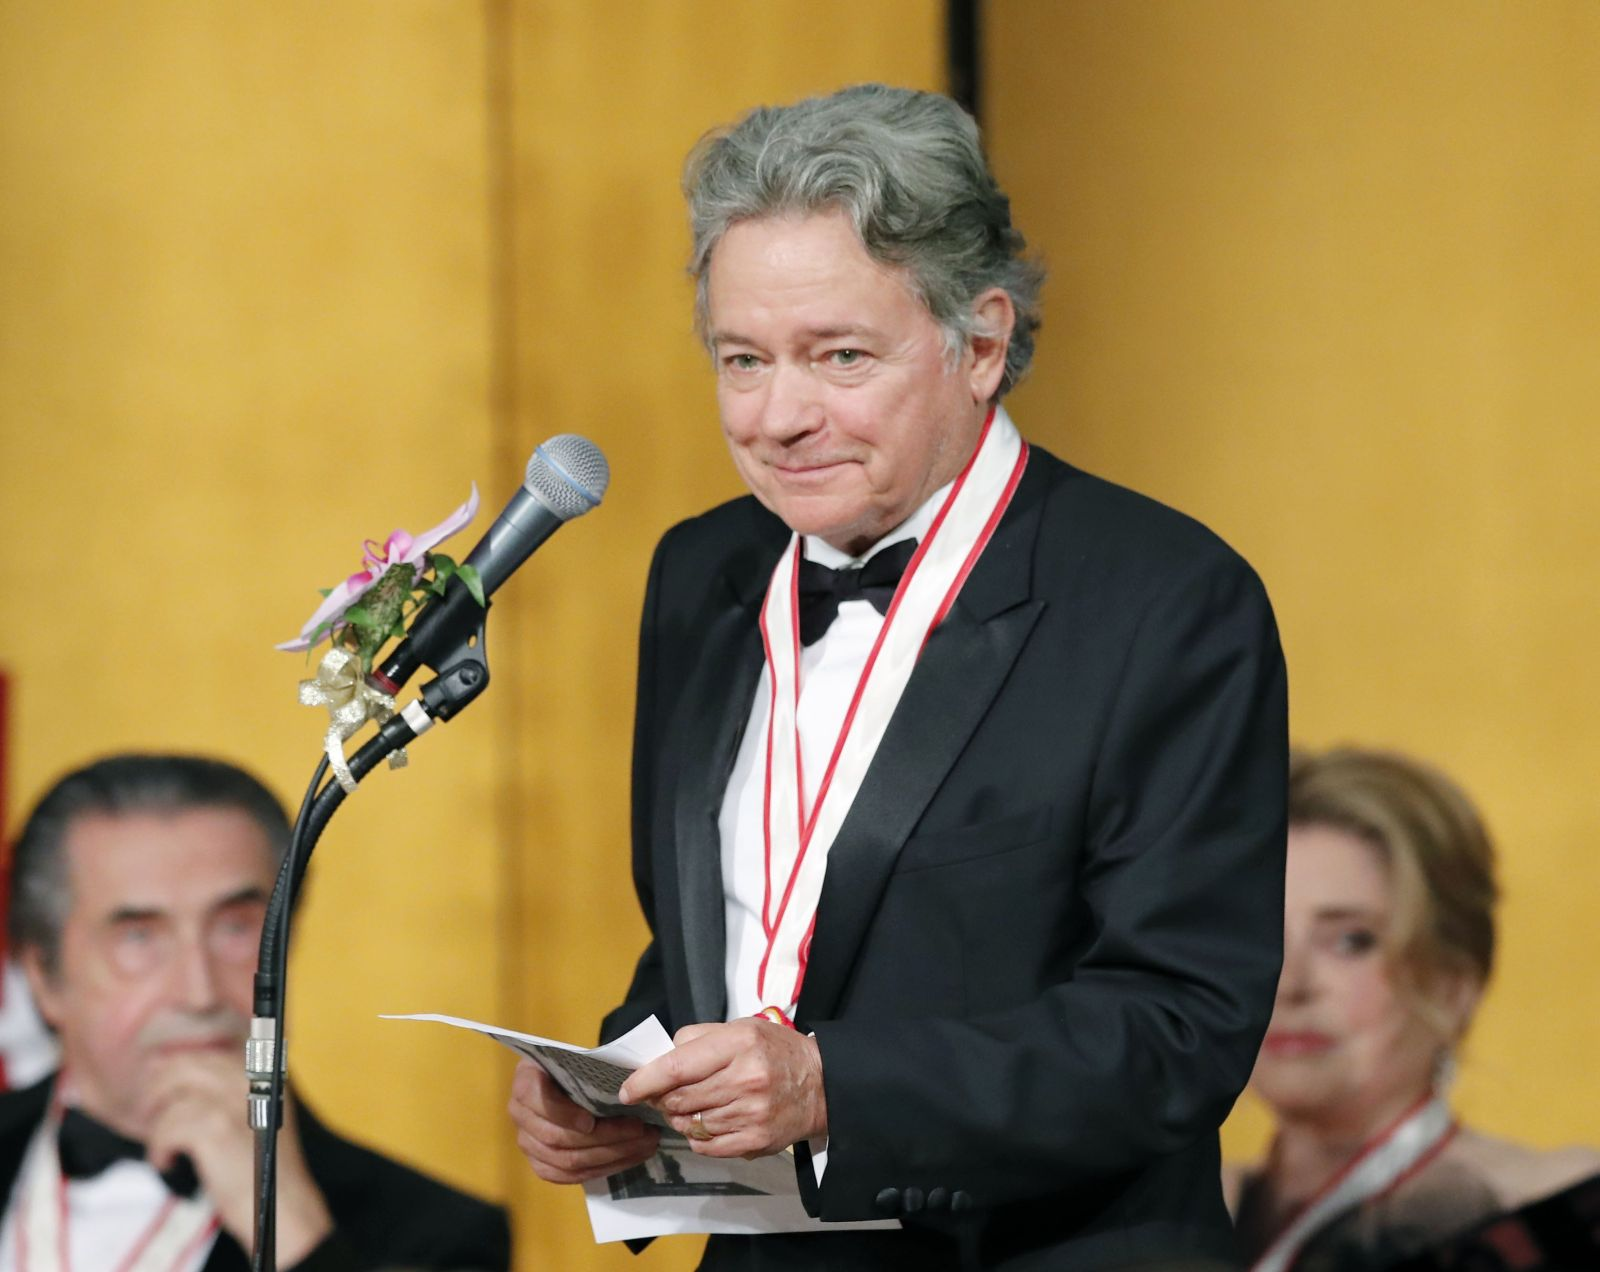 'The Spirit of Peace Needs Artists': Highlights of the 30th Praemium Imperiale Awards